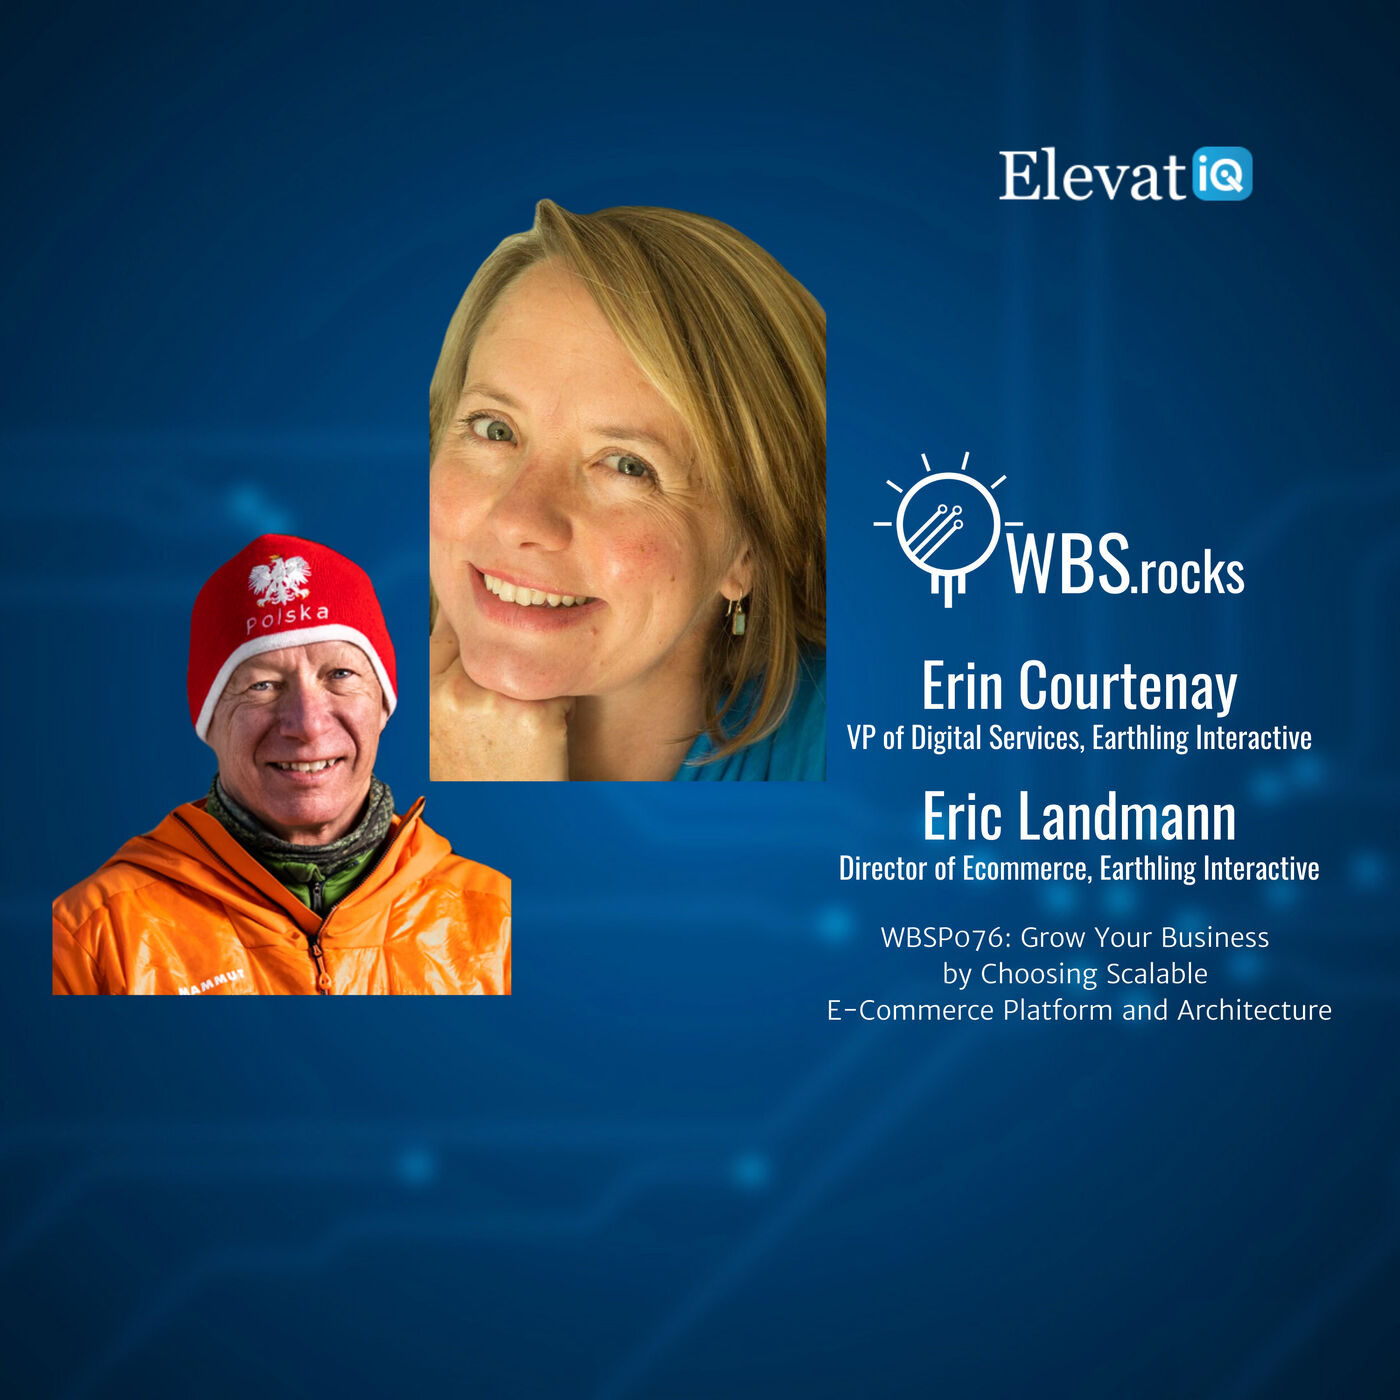 WBSP076: Grow Your Business by Choosing Scalable E-Commerce Platform and Architecture w/ Erin Courtnay and Eric Landmann